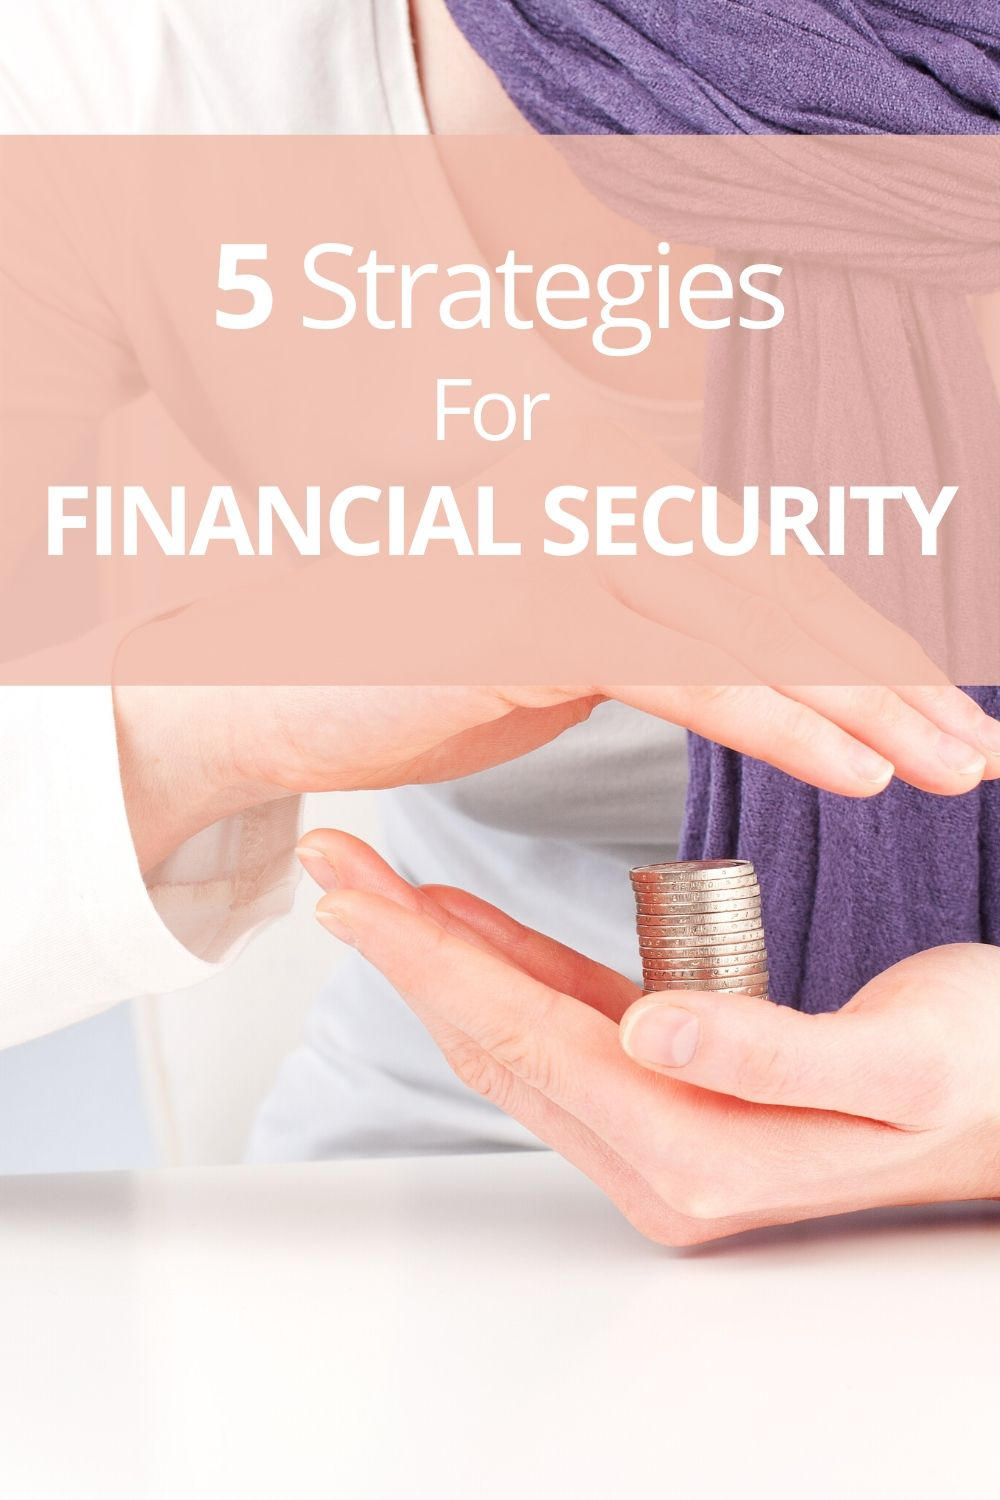 Everyone would want to enjoy financial security, but not many know where to start. Here's how you can start attaining financial security in five ways.